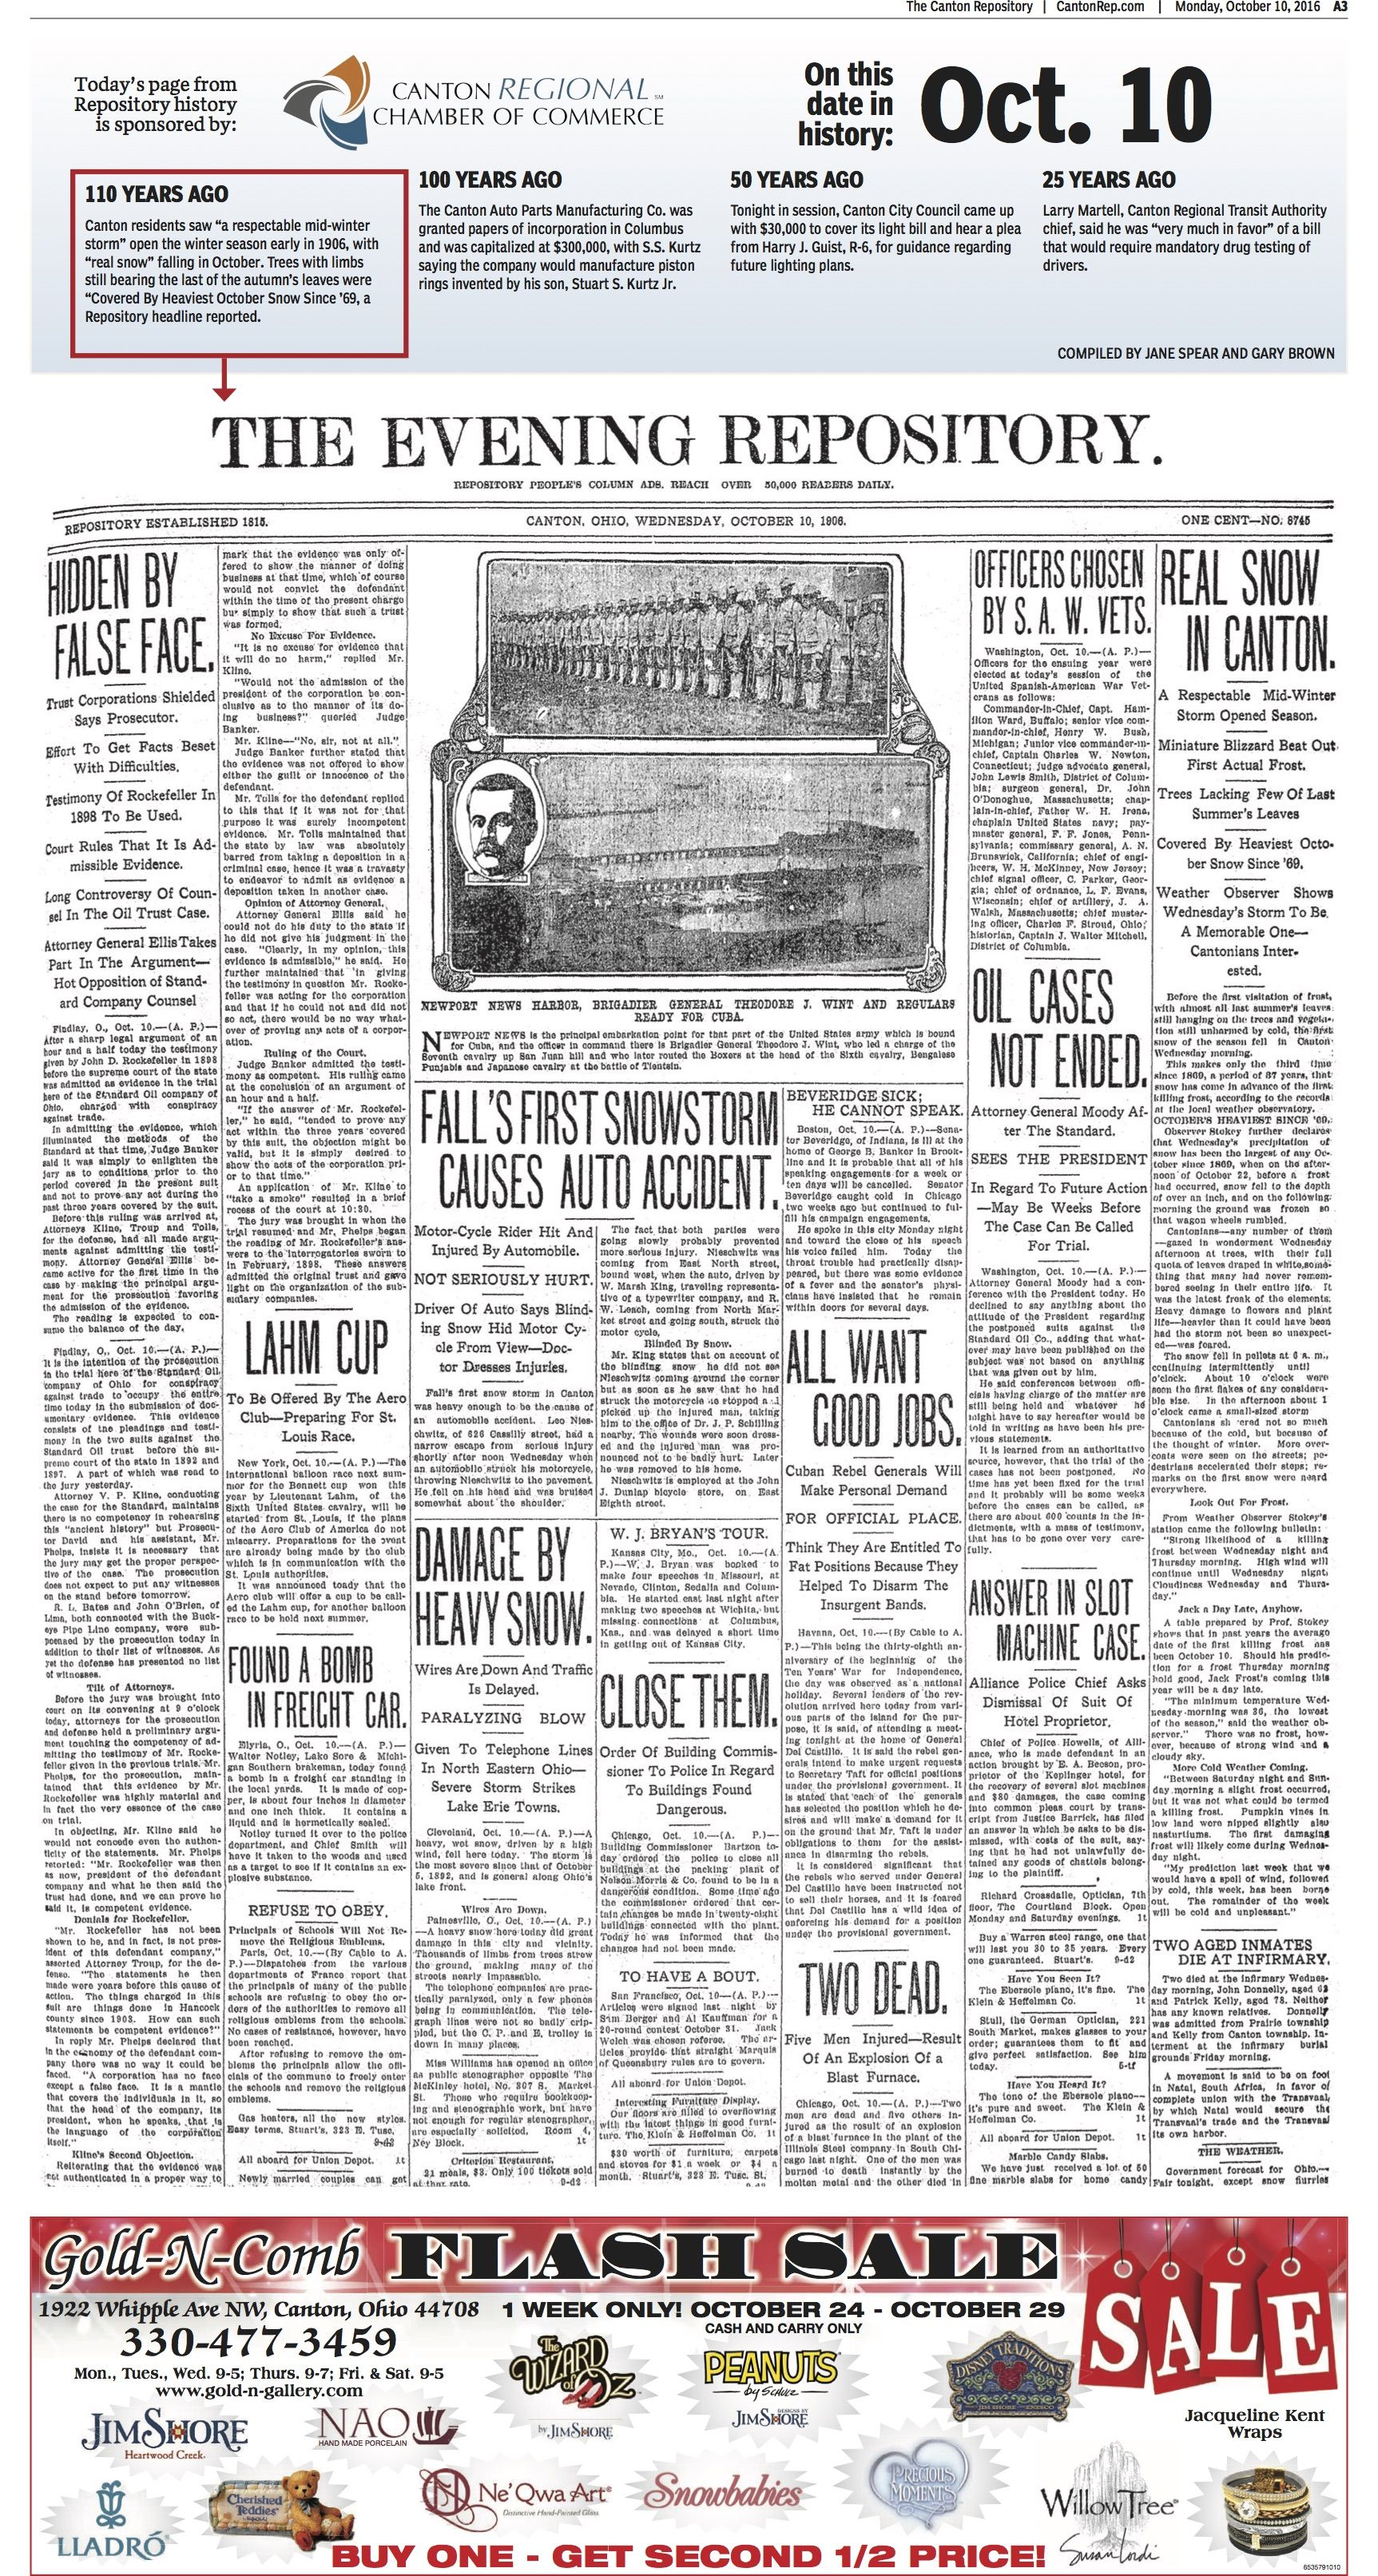 An early snowstorm hit Stark County as reported in The Repository on October 10, 1906.